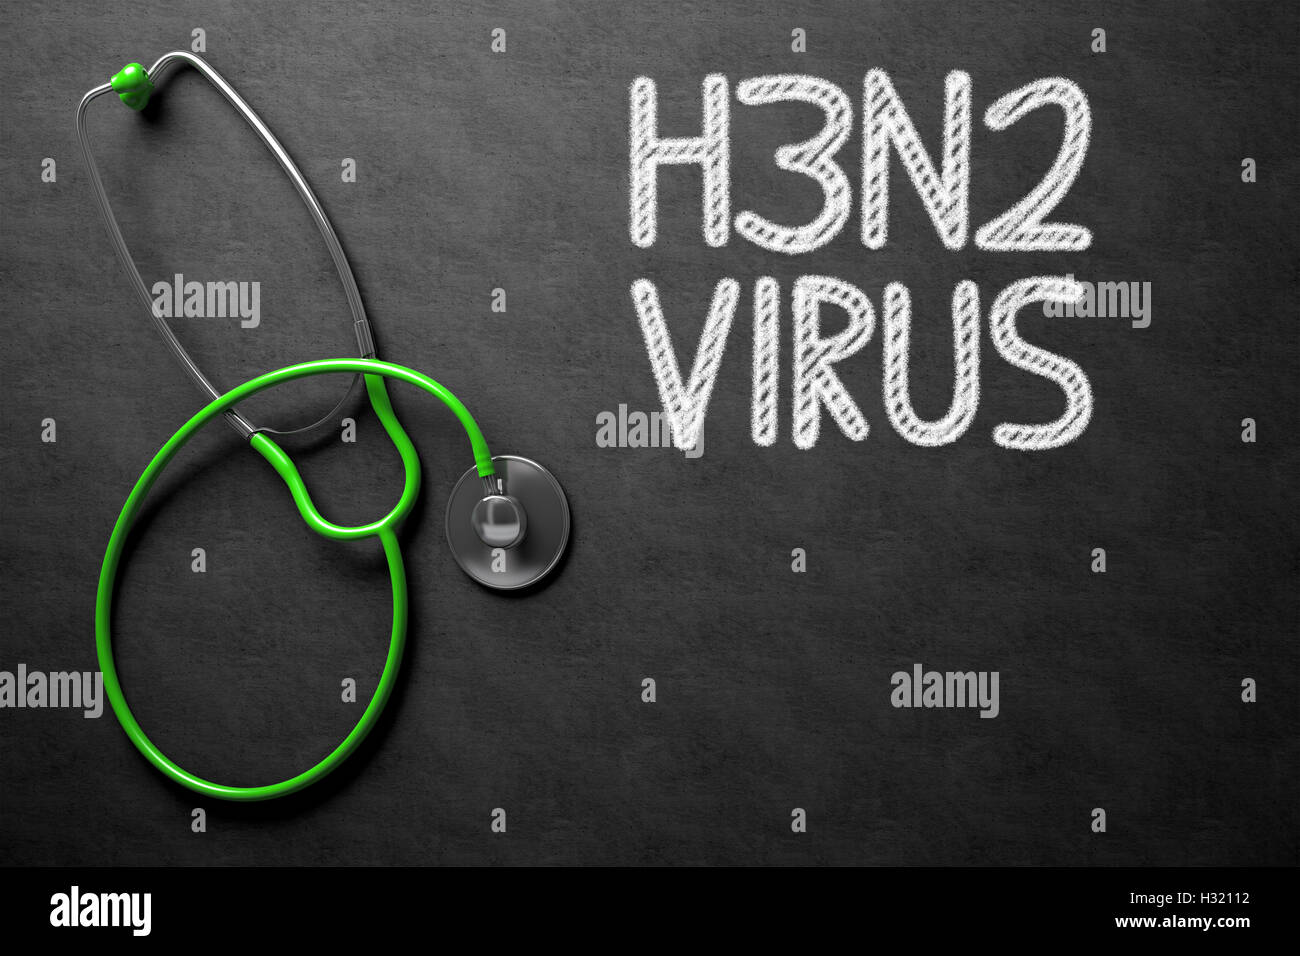 Chalkboard with H3N2. 3D Illustration. - Stock Image